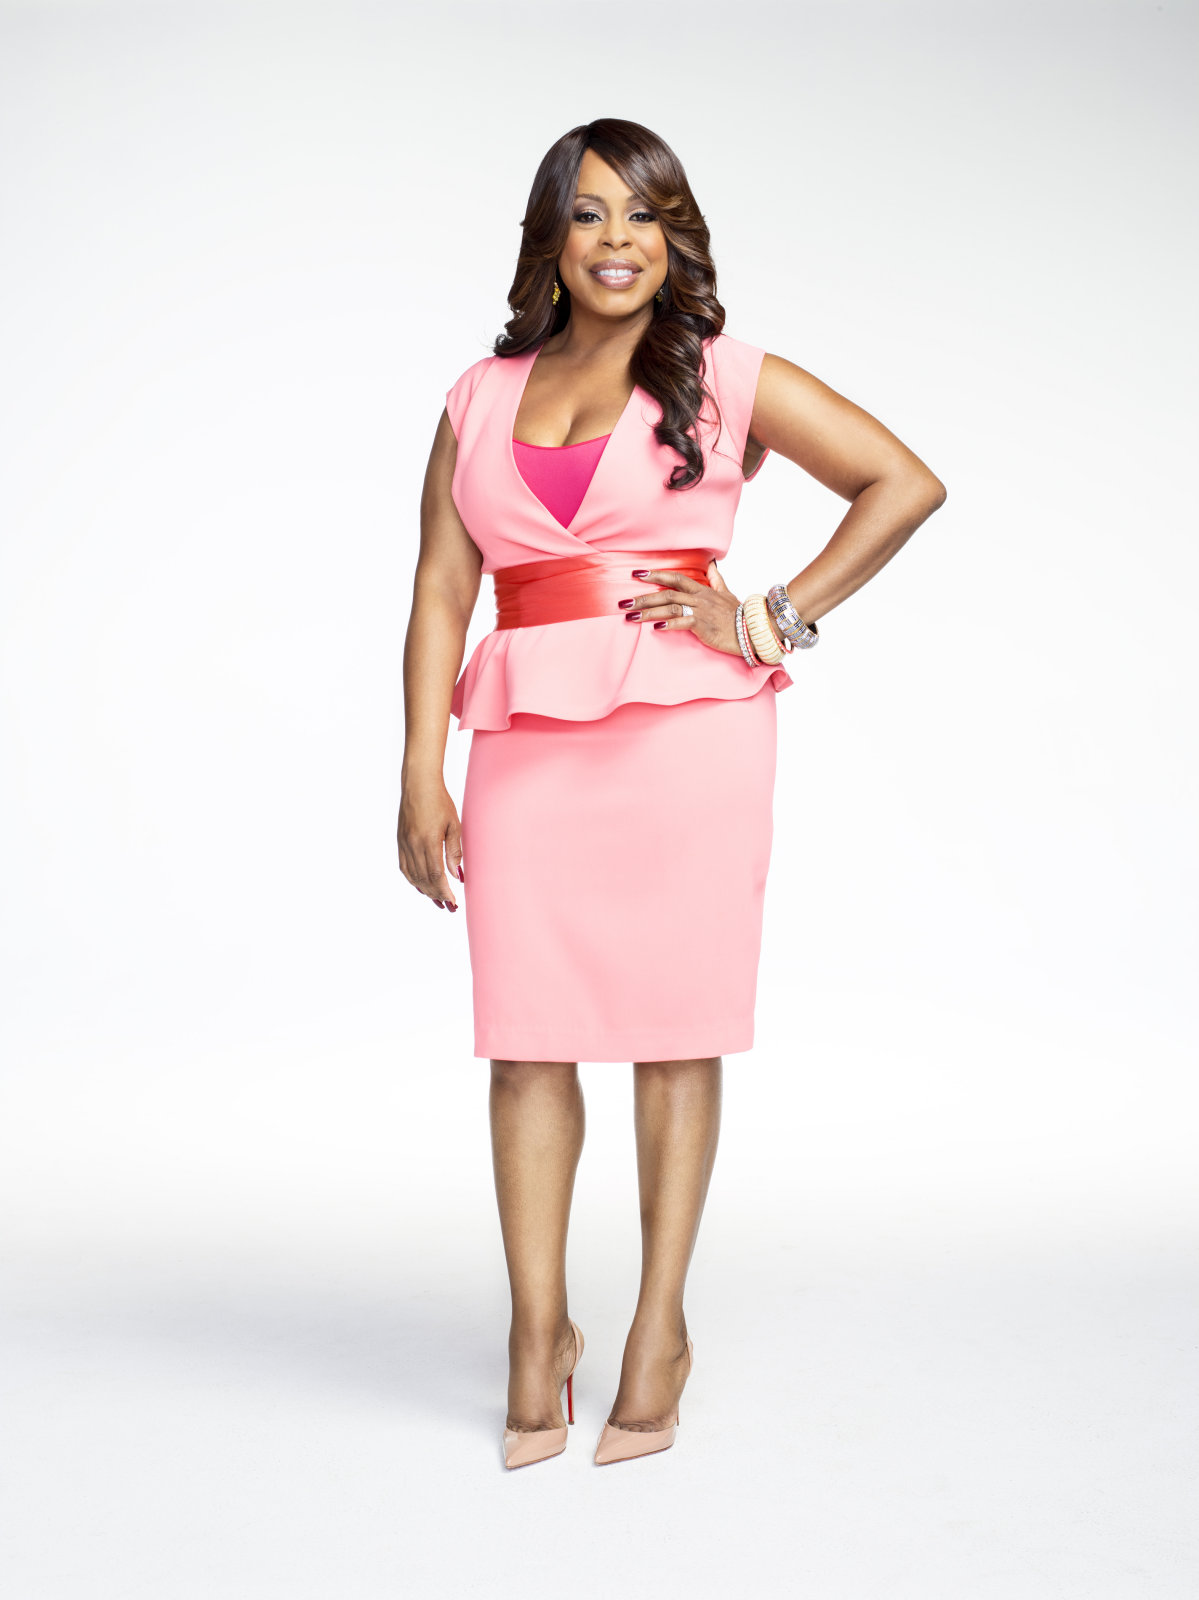 niecy nash playboy